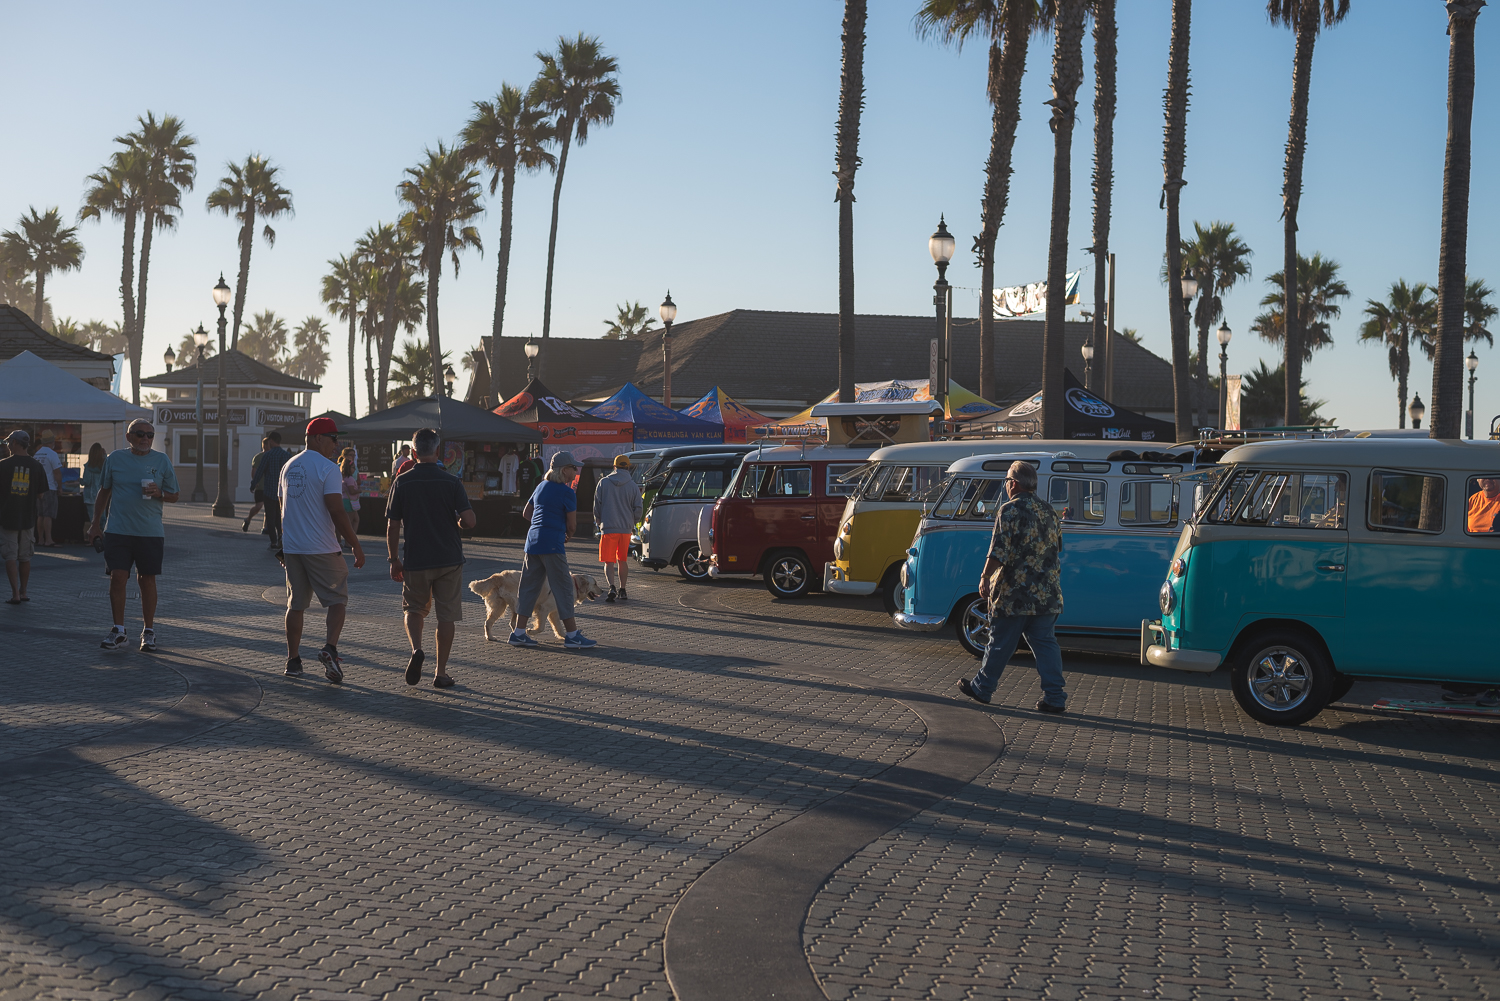 huntington beach main street car show.jpg